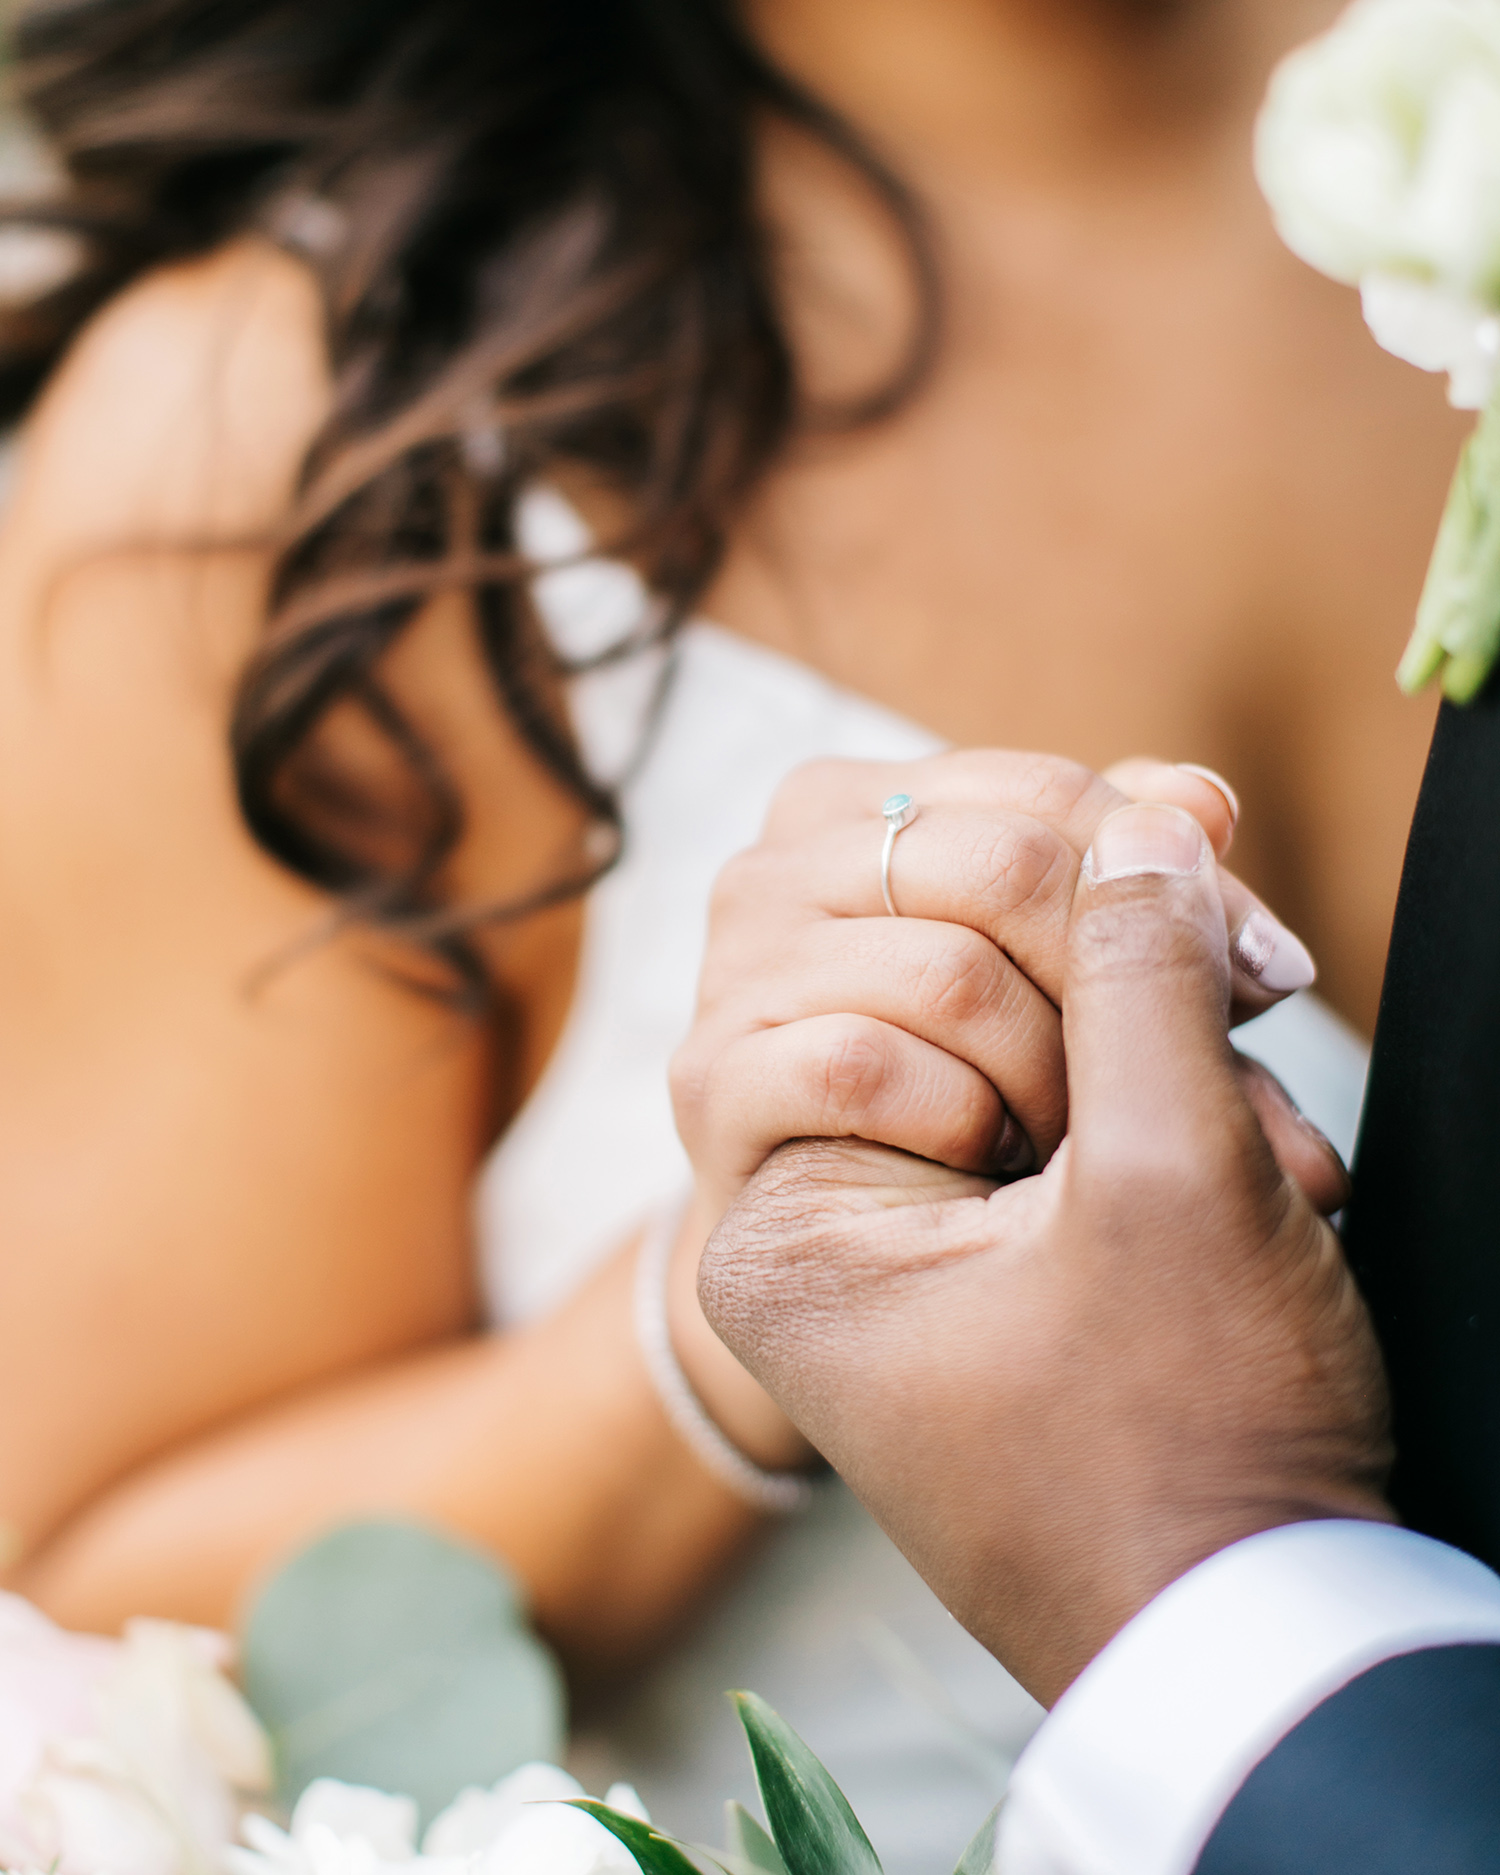 jessica ali wedding ring holding hands